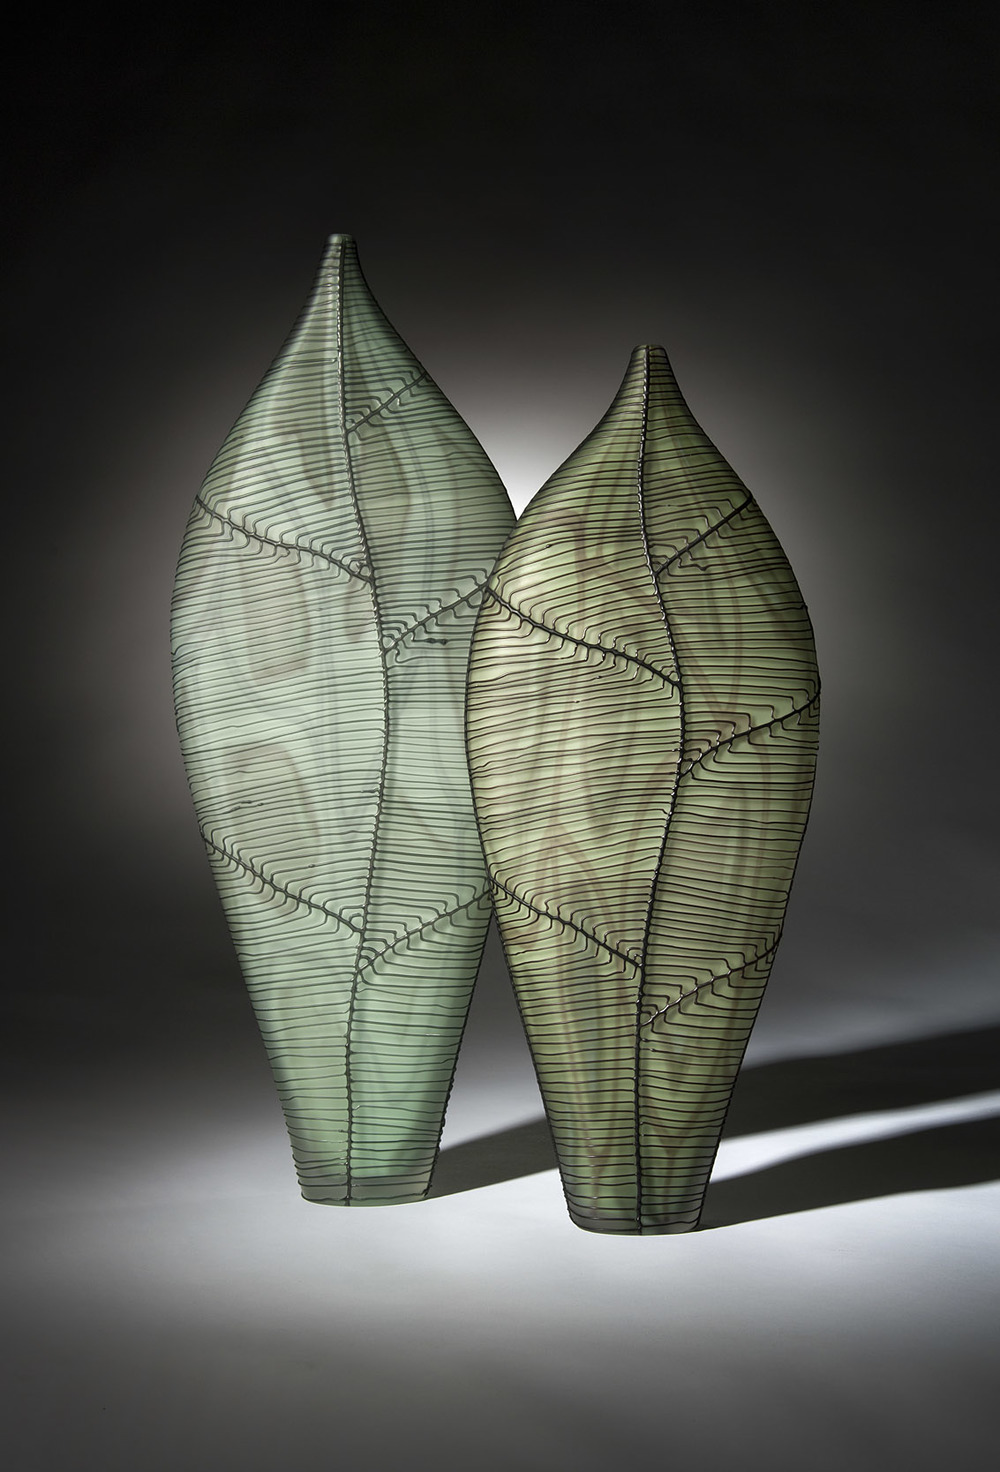 Leaf Circuitry , pair, 2012 In the collection of the Corning Museum of Glass, USA